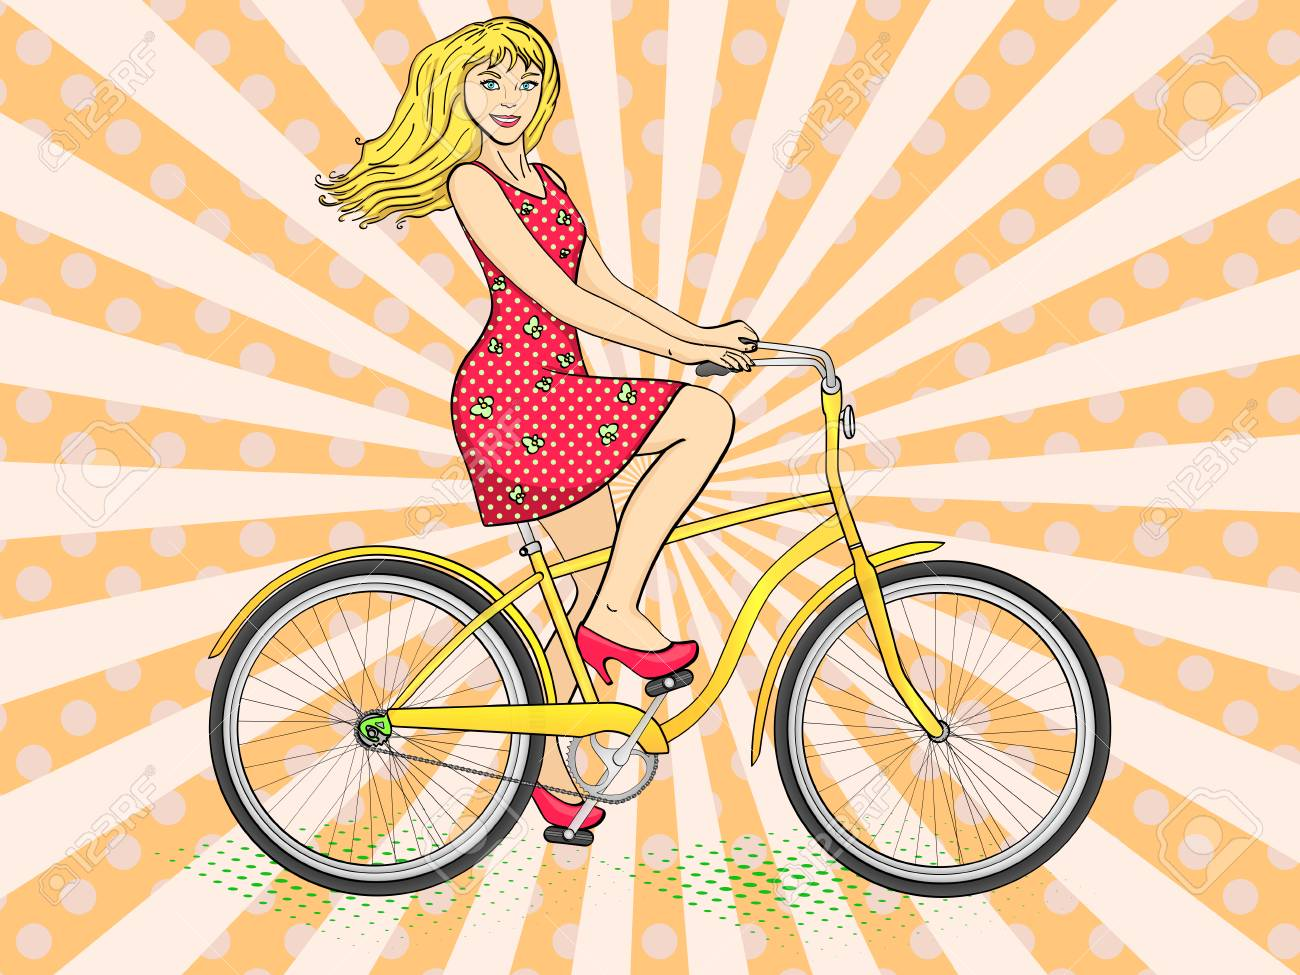 Pop art background with sun rays. Young beauty woman ride bicycle retro vector illustration. Color background. Comic book style imitation. - 100849267